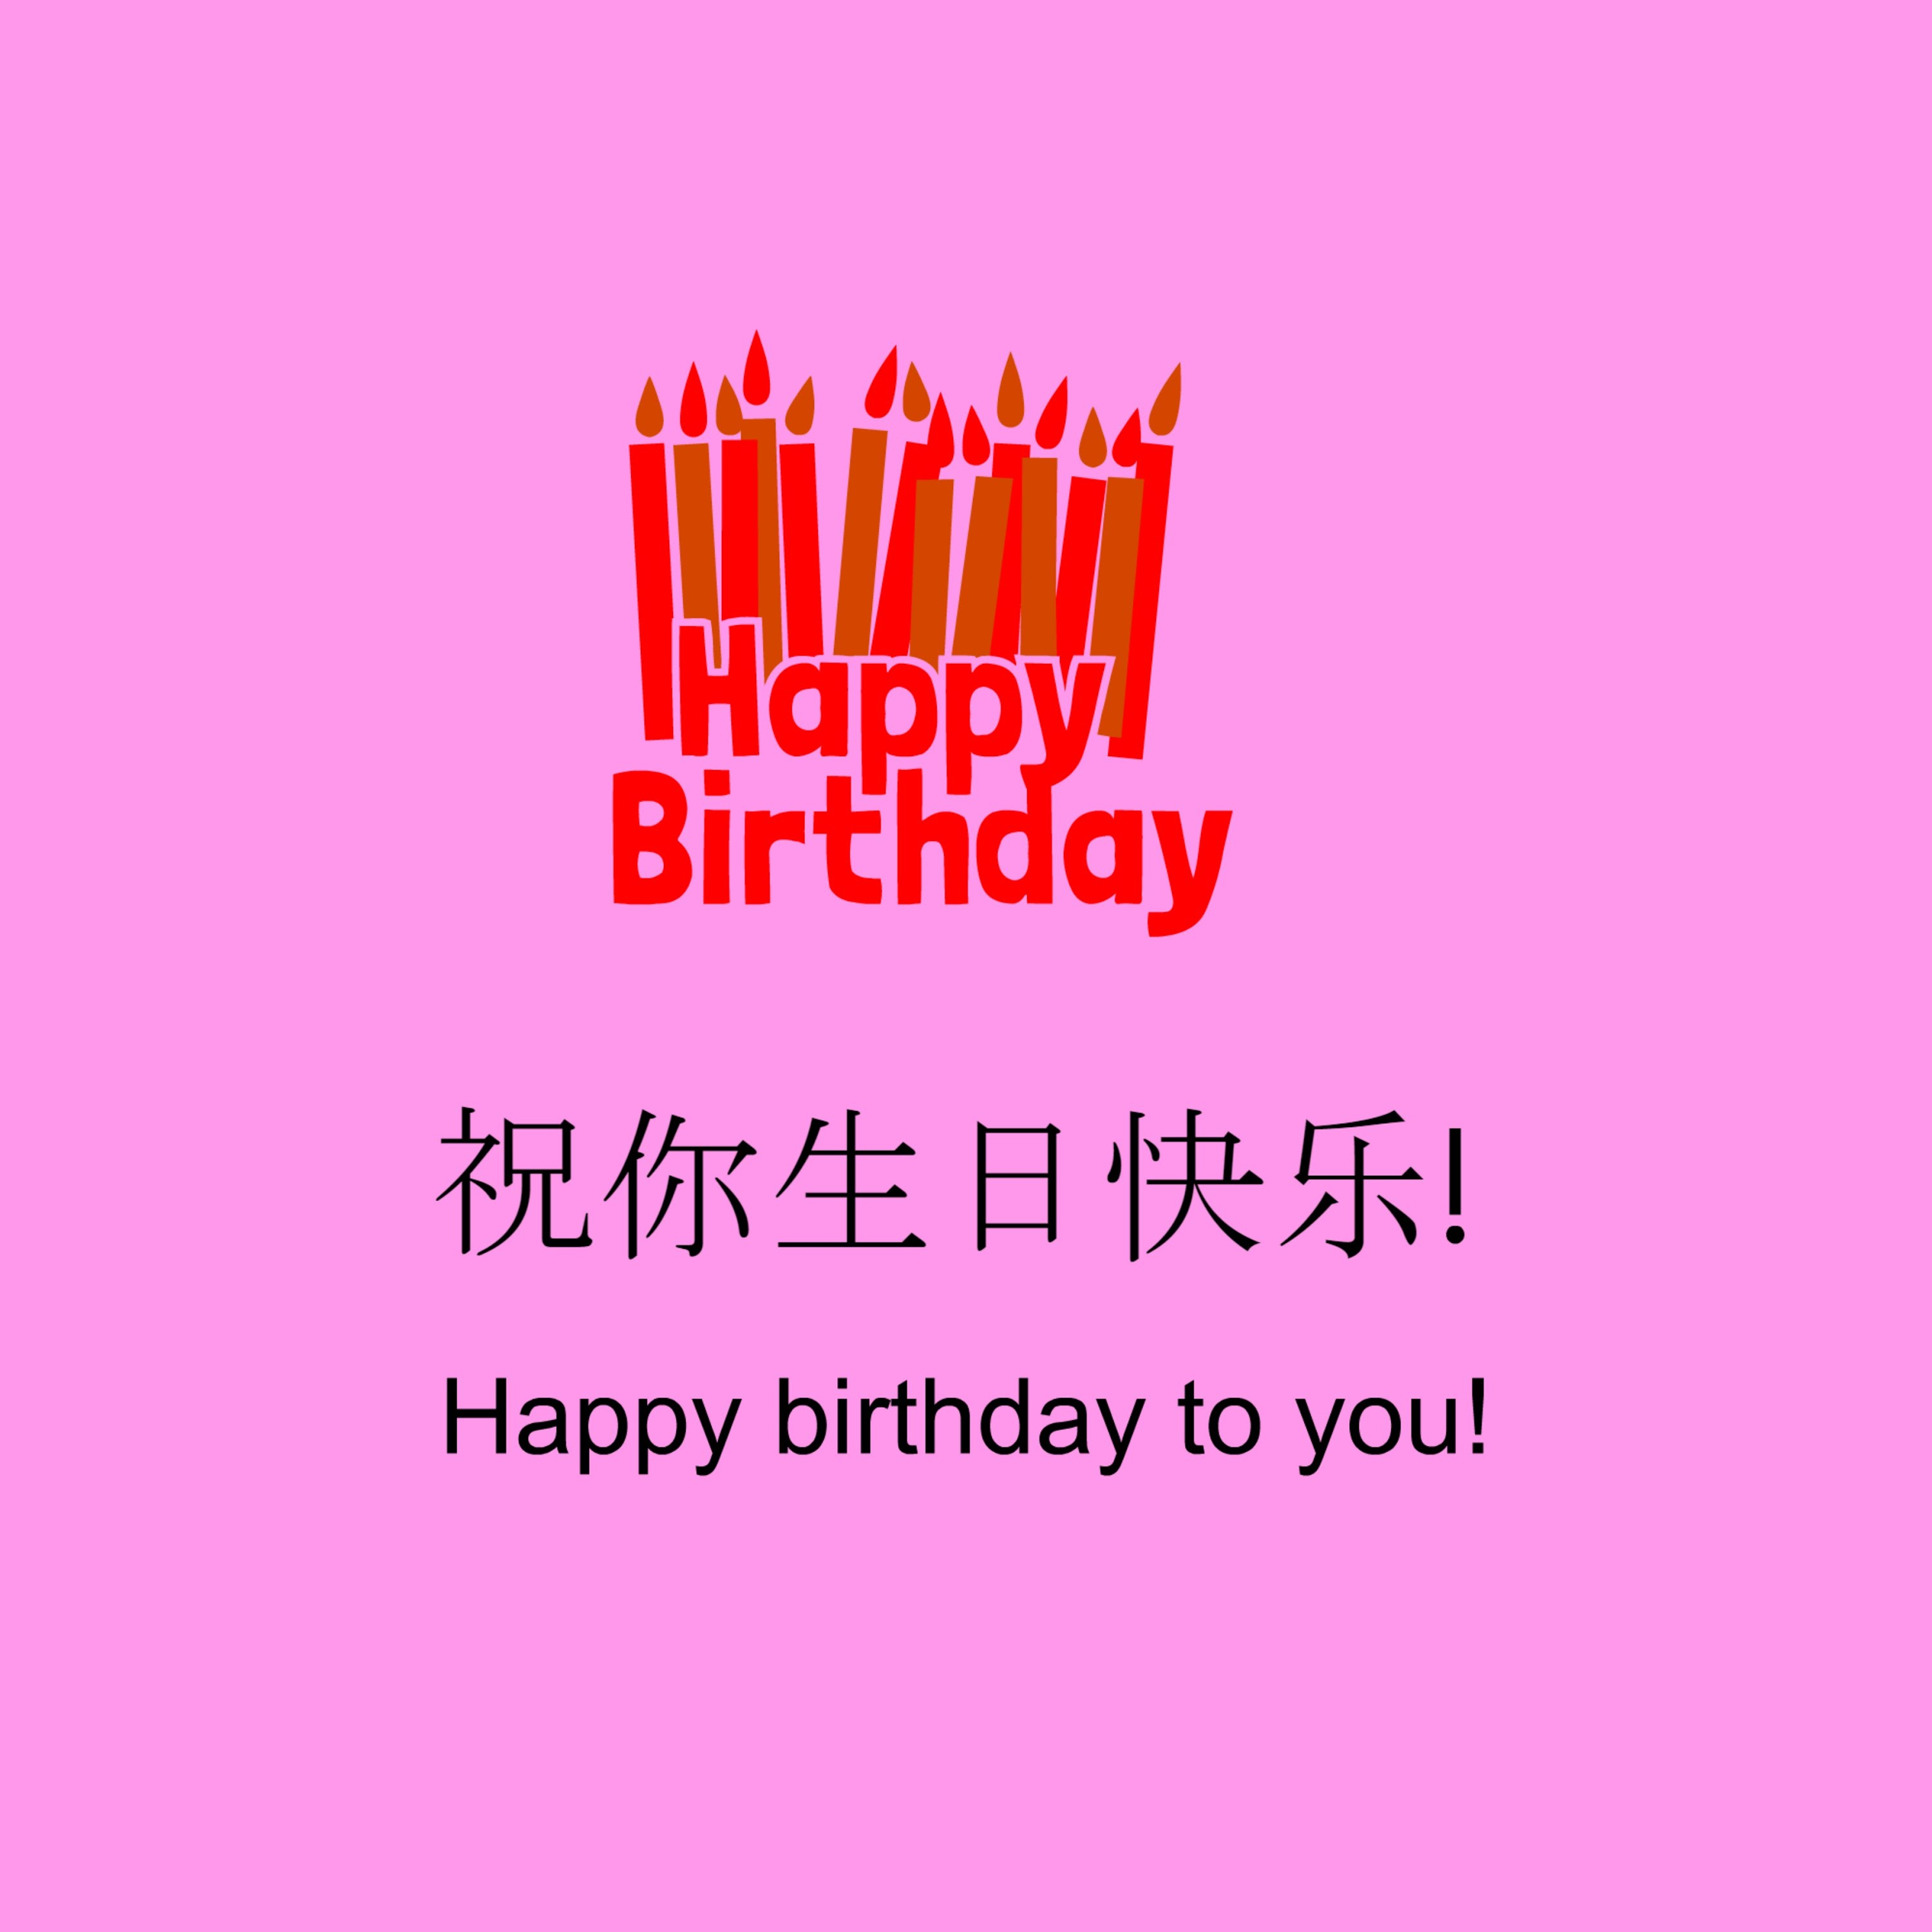 happy birthday in chinese image ; maxresdefault-2